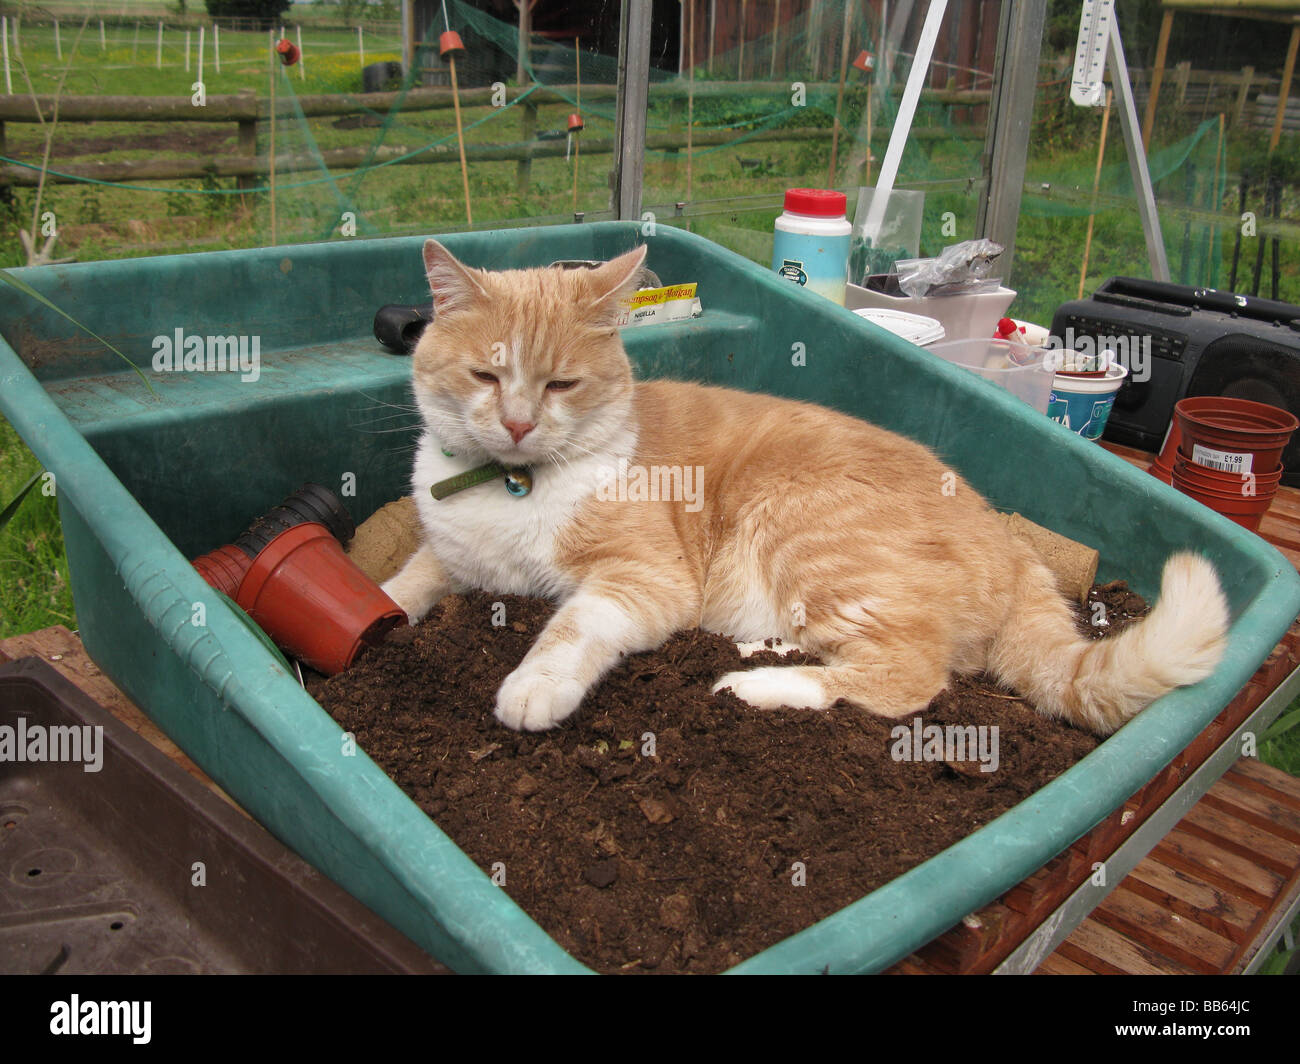 cat in compost - Stock Image